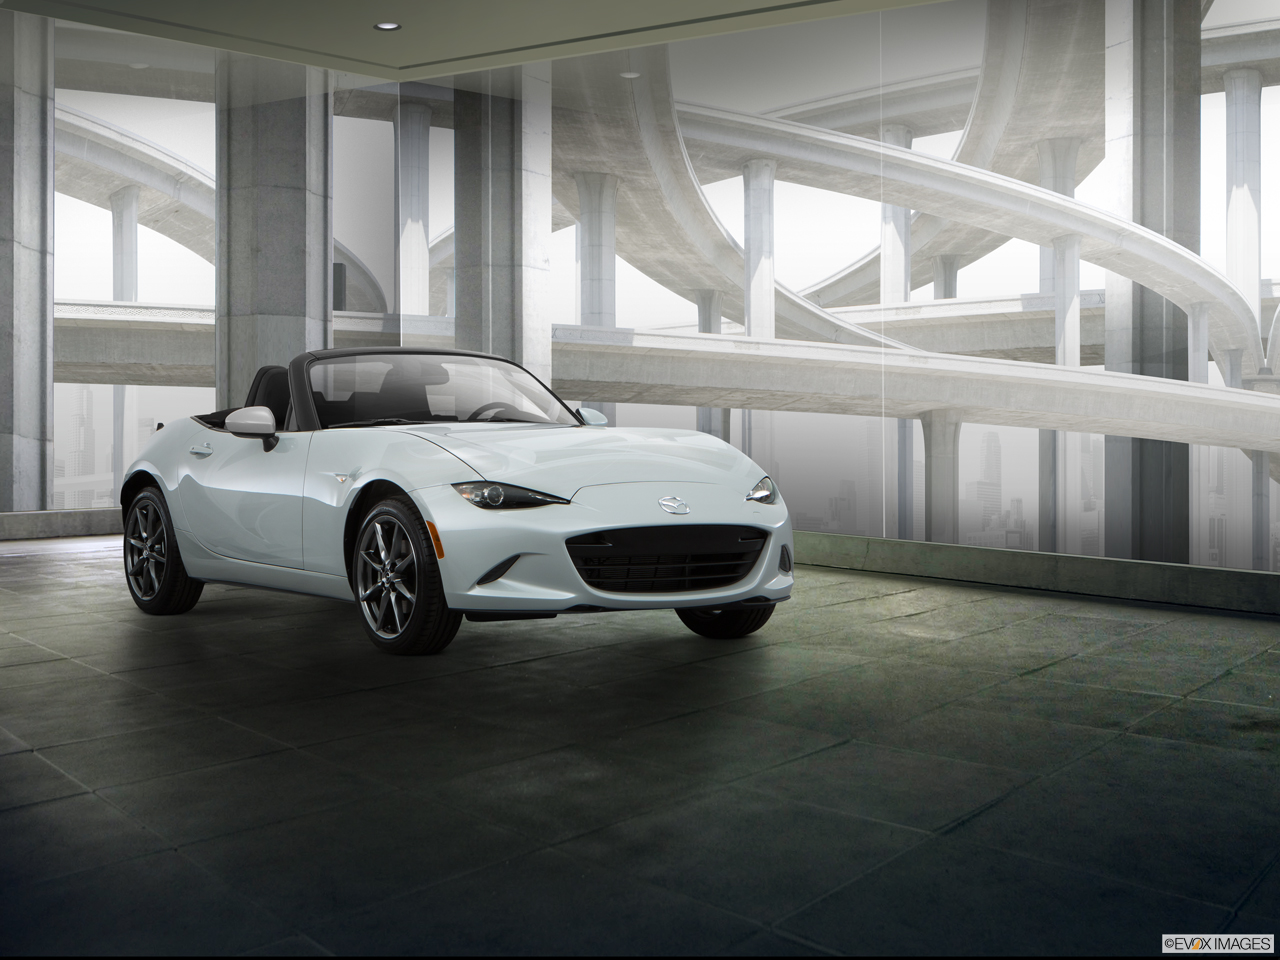 Exterior View Of 2016 Mazda MX-5 Miata in Los Angeles